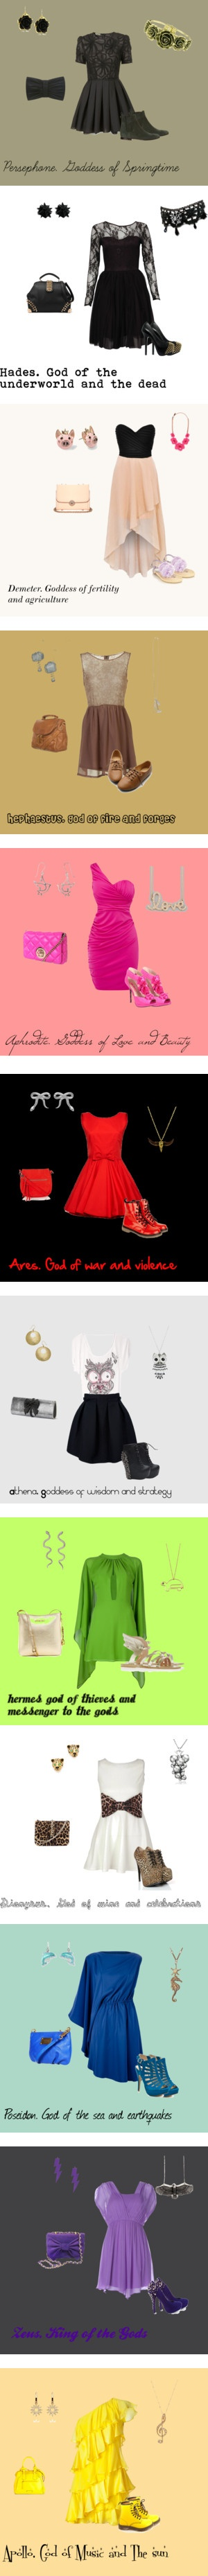 """""""Greek gods and goddess's"""" by lalalauren1 on Polyvore"""